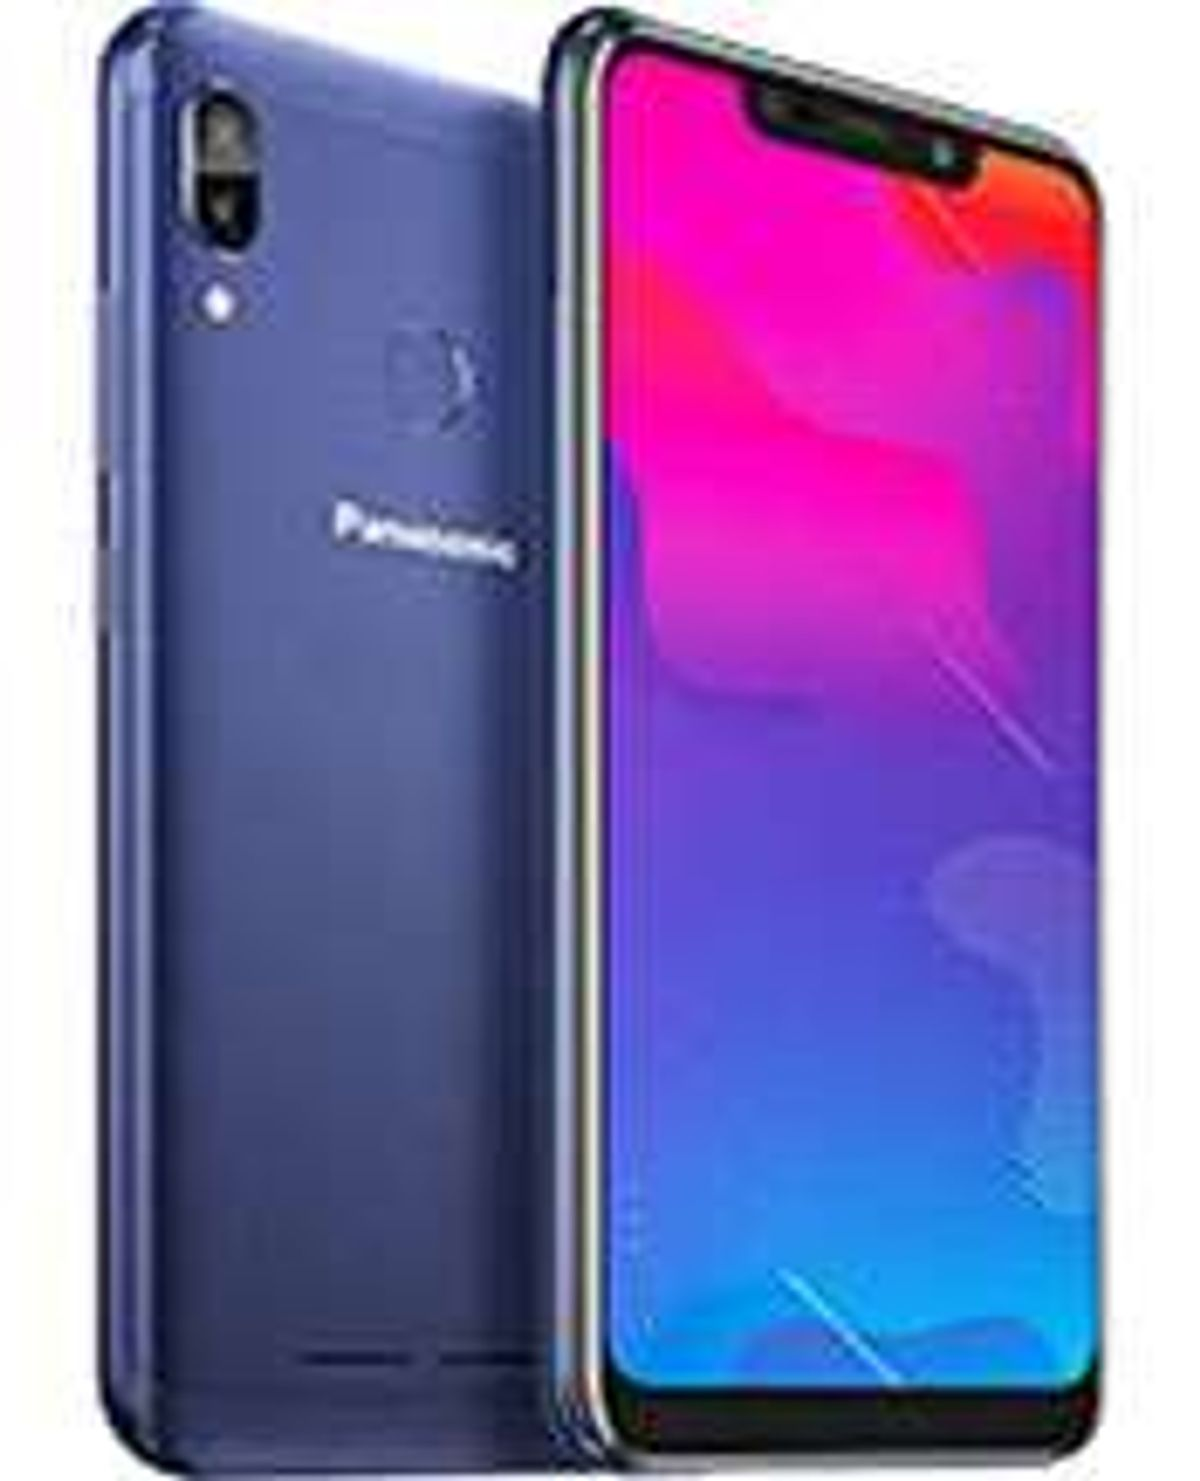 Best Panasonic 128 GB Internal Memory Phones in India July 2019